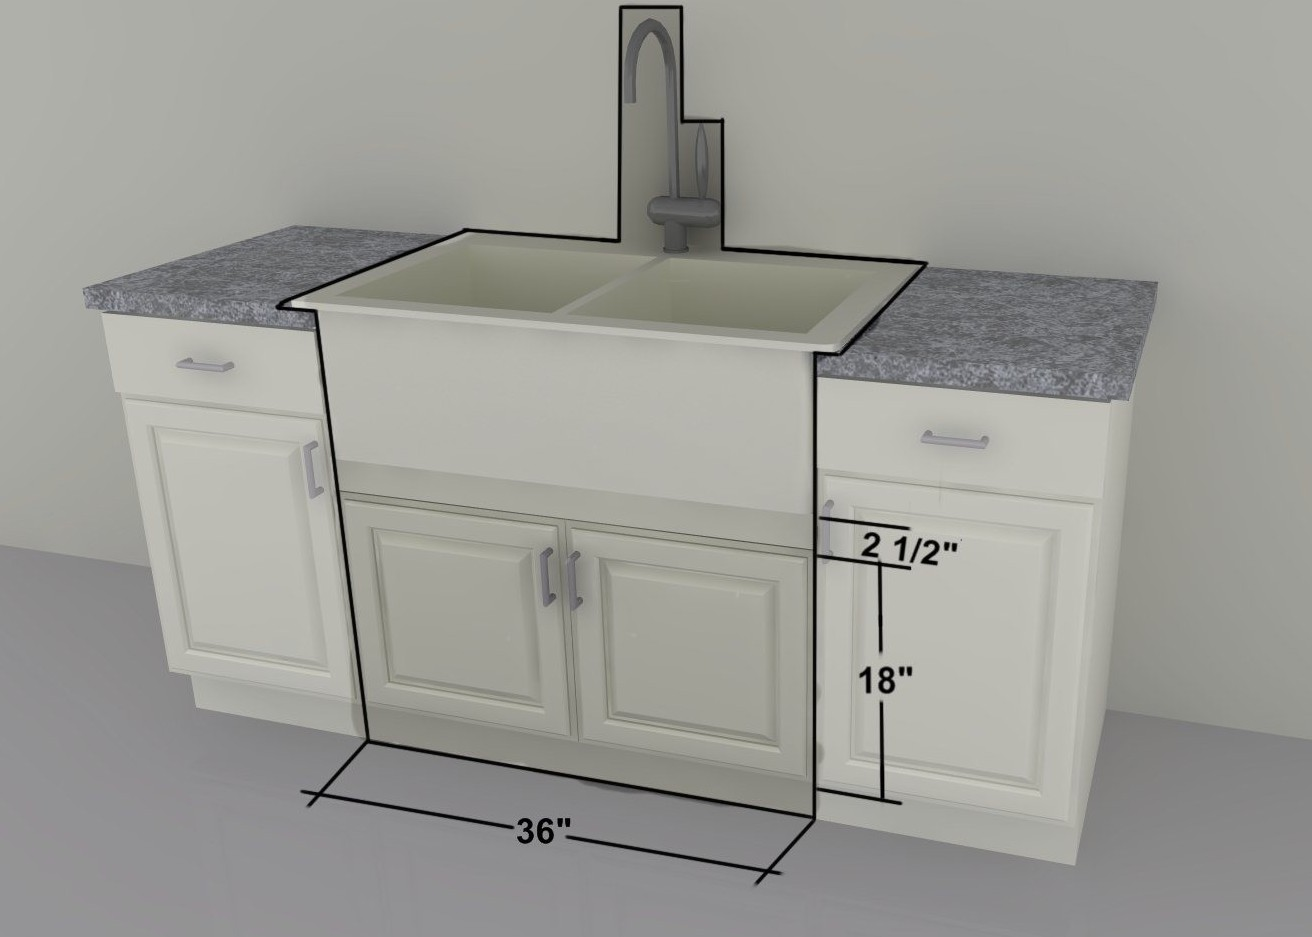 ikea utility sink unit - sink ideas Ikea Utility Sink